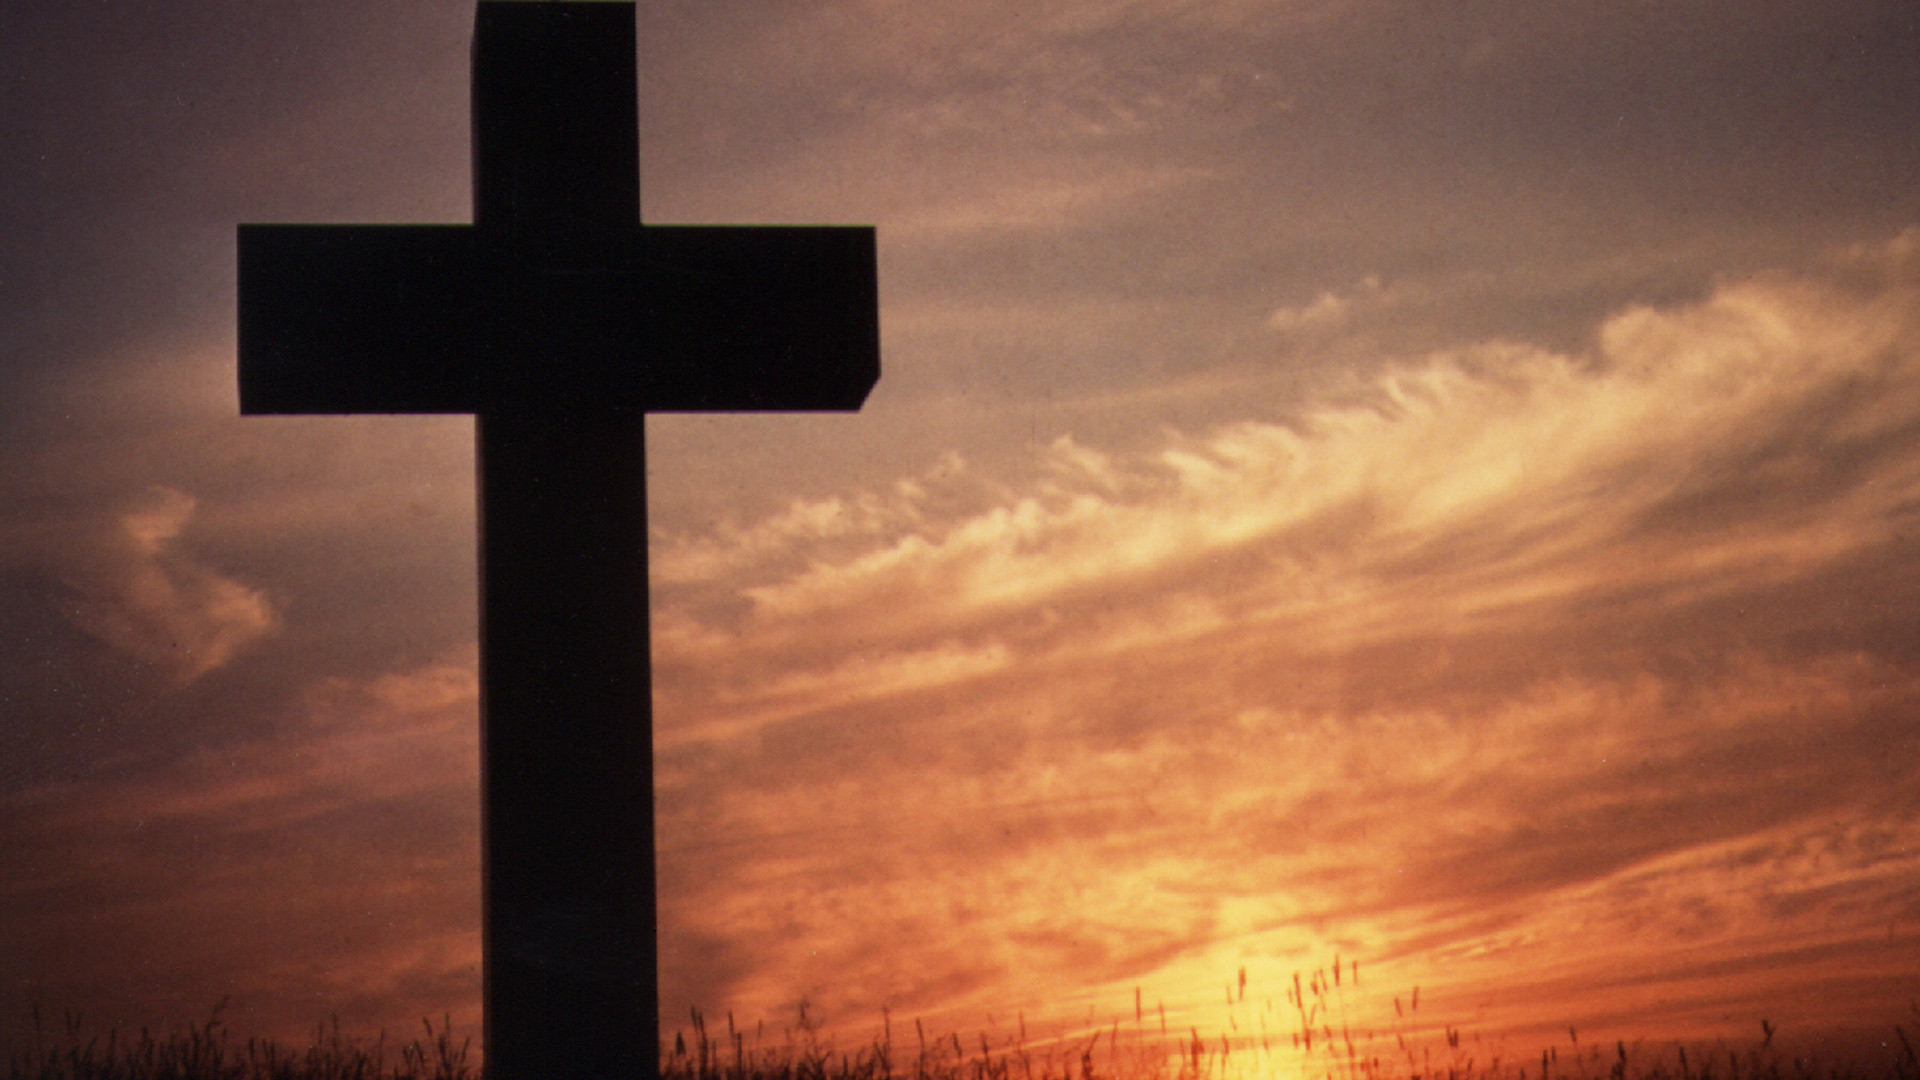 Res: 1920x1080, Christian Cross Picture by Wan Kleven PC.192-GPZ